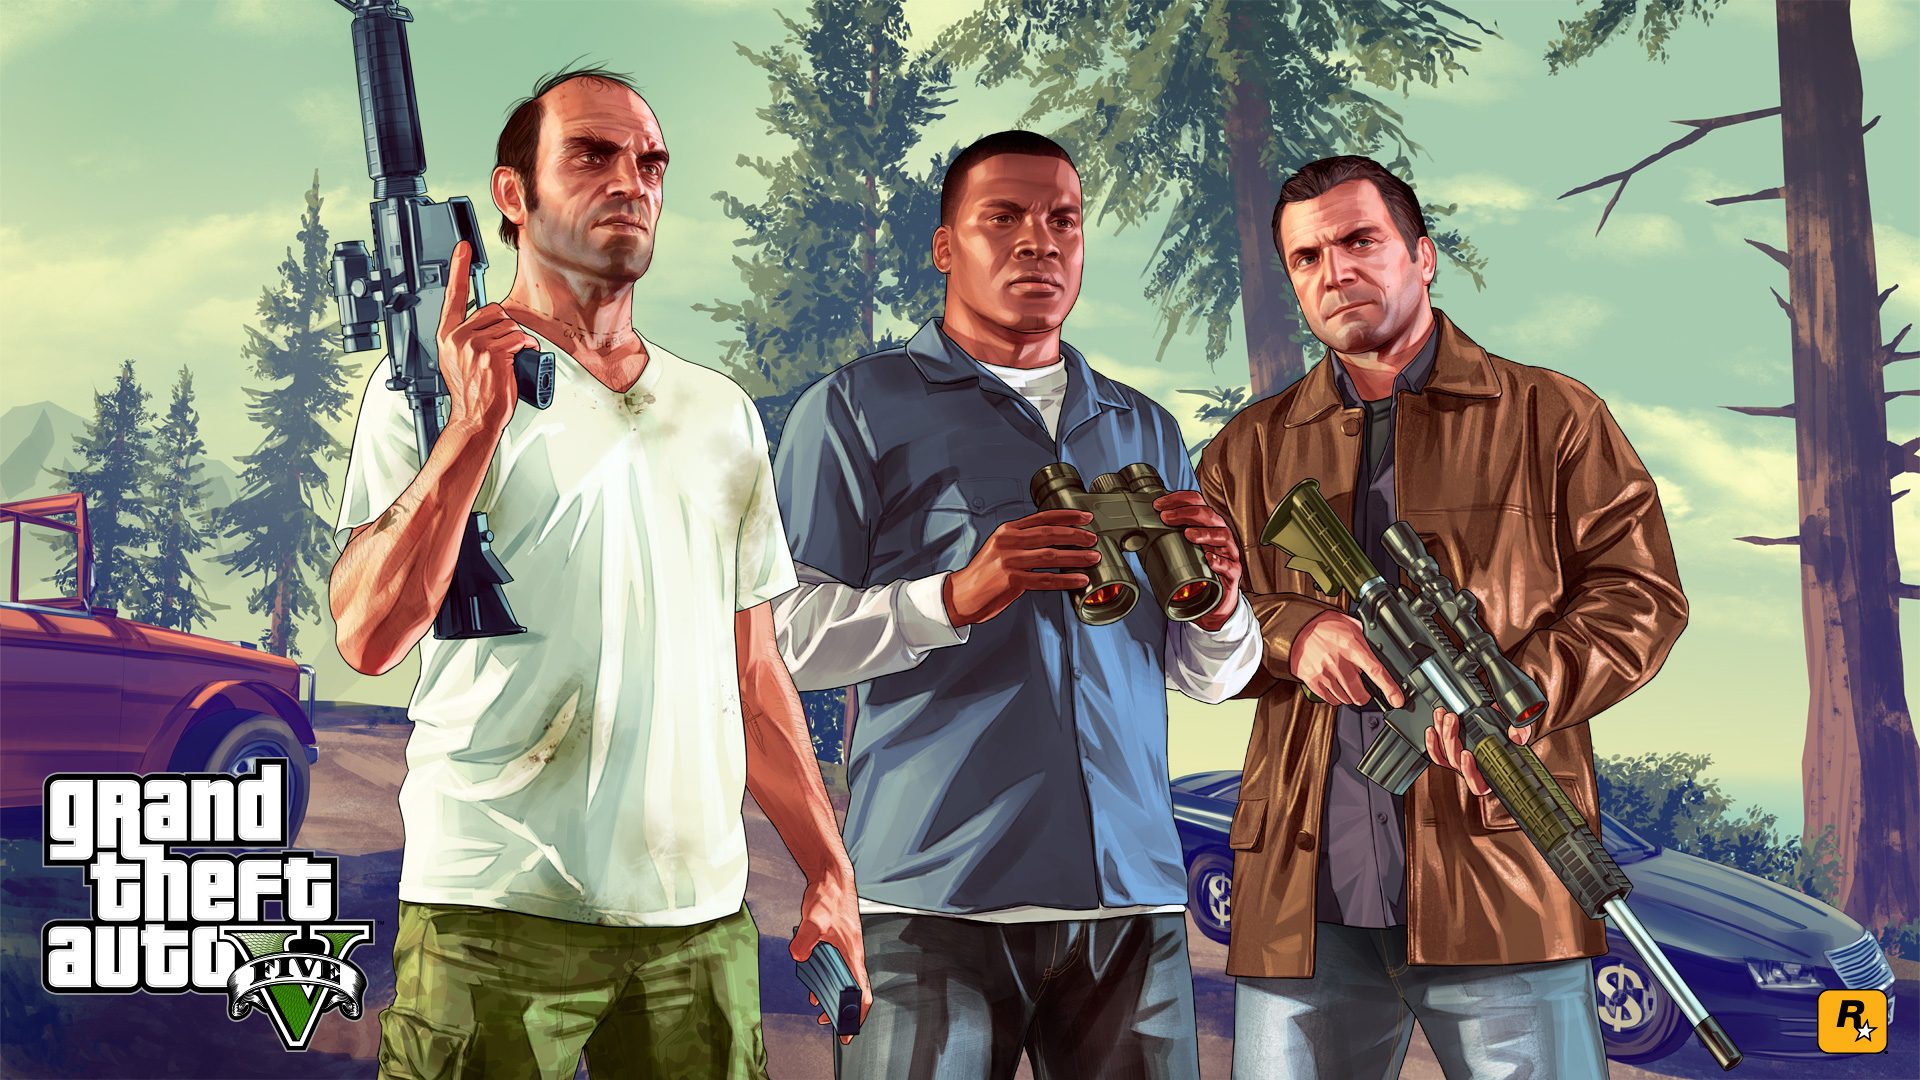 25 gta 5 hd wallpapers - mytechshout - blogging , technology , how to's